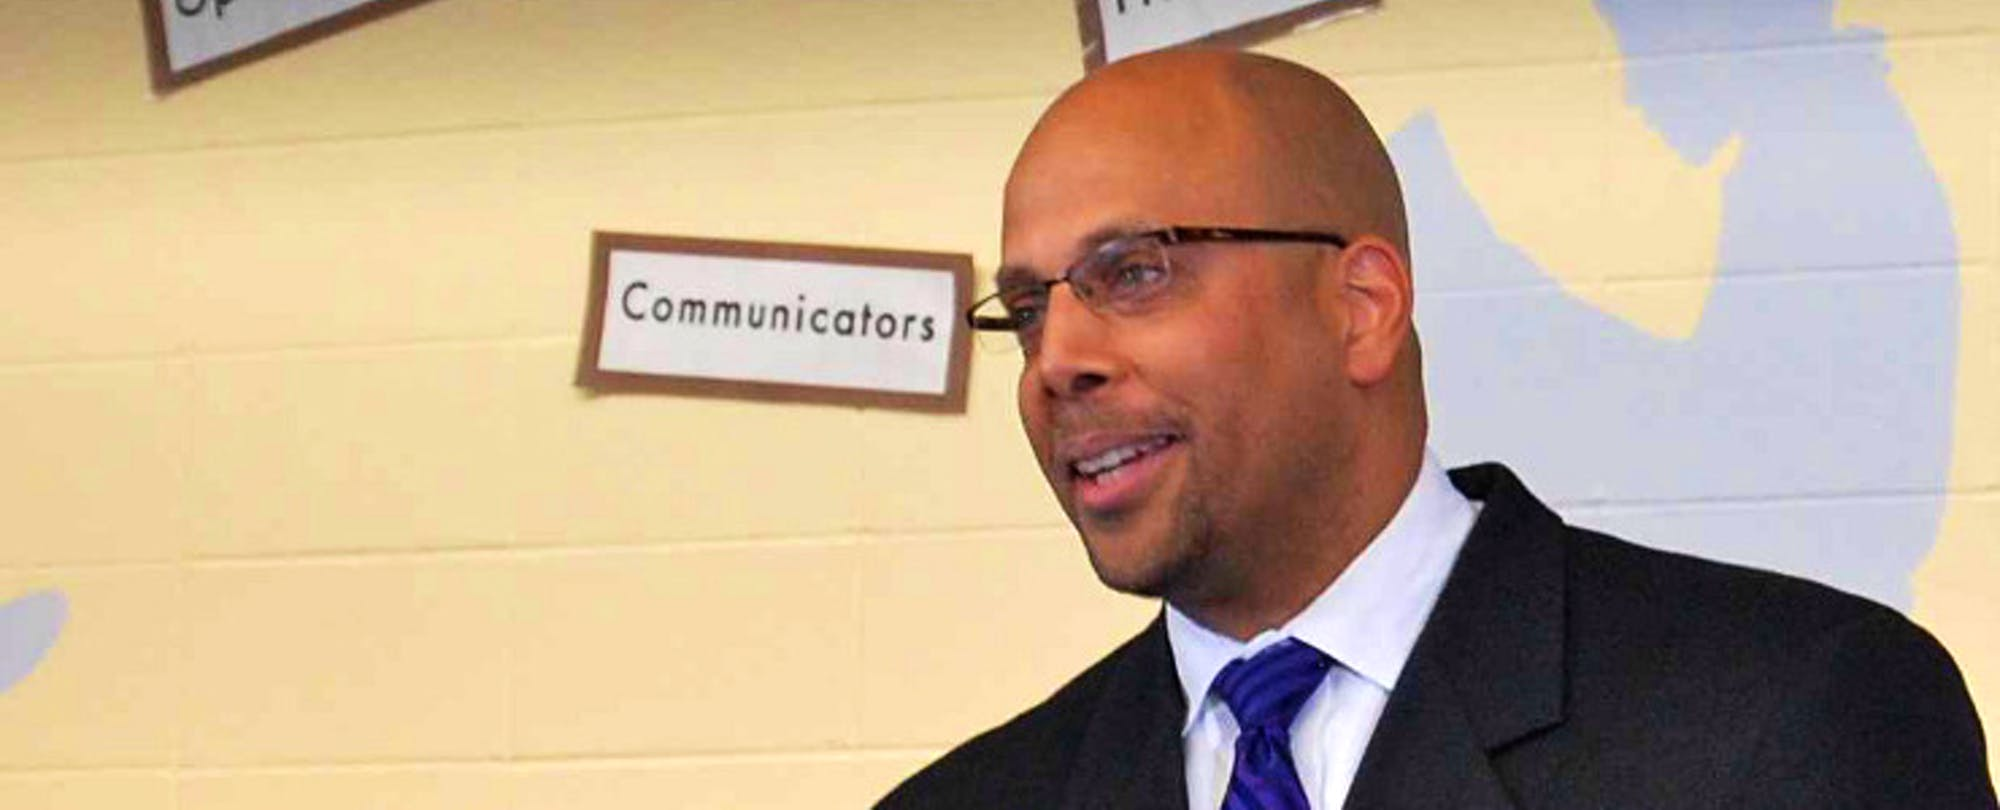 Q&A with Department of Ed's Jim Shelton on Entrepreneurs and Innovation